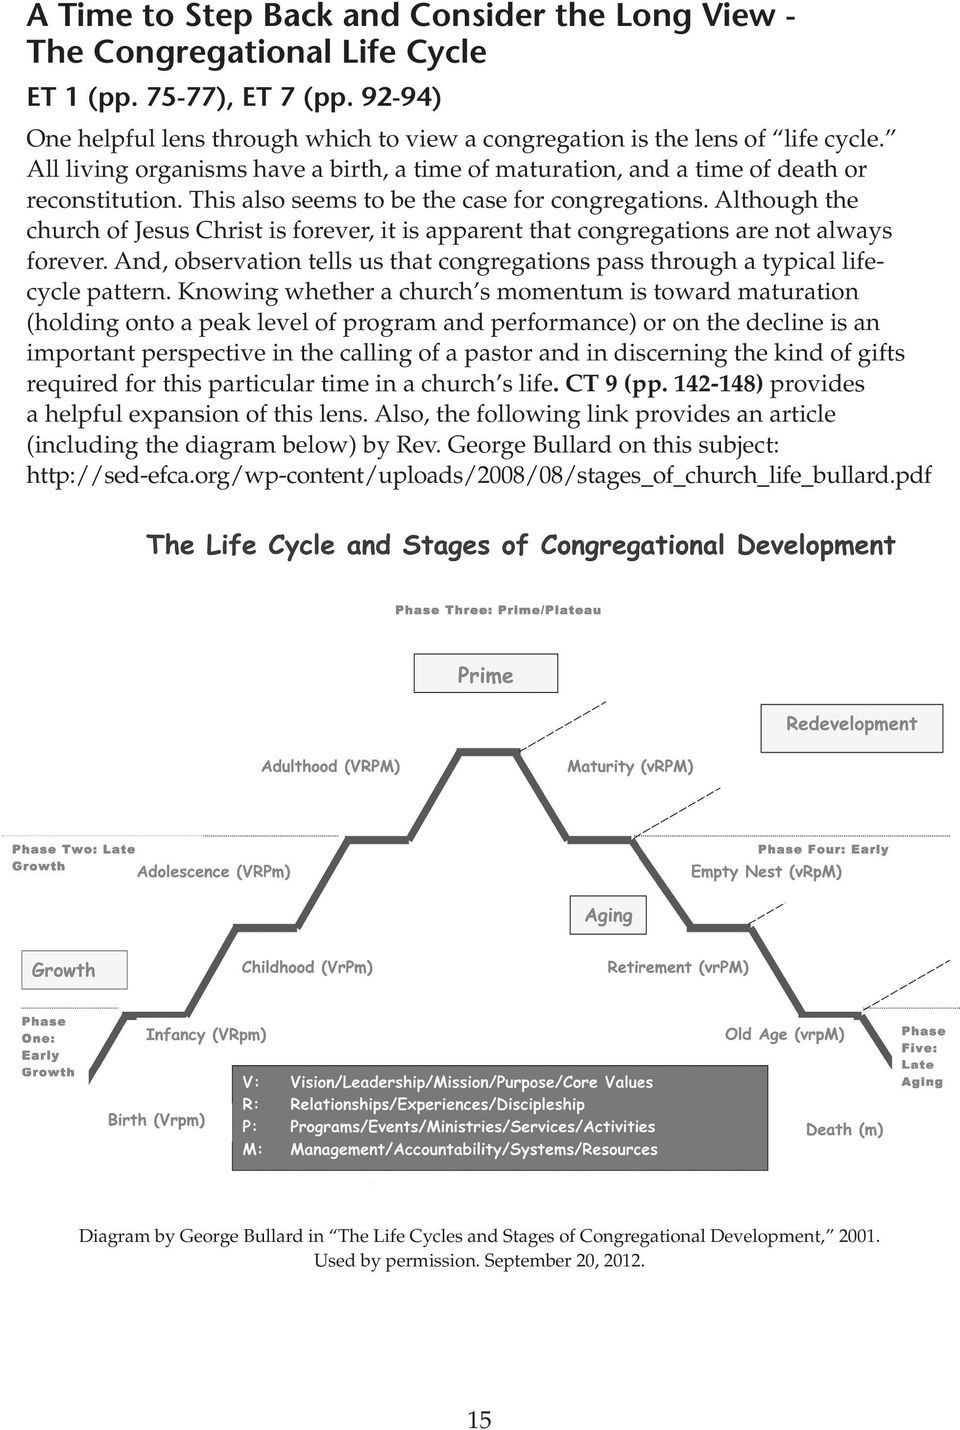 Although the church of Jesus Christ is forever, it is apparent that congregations are not always forever. And, observation tells us that congregations pass through a typical lifecycle pattern.